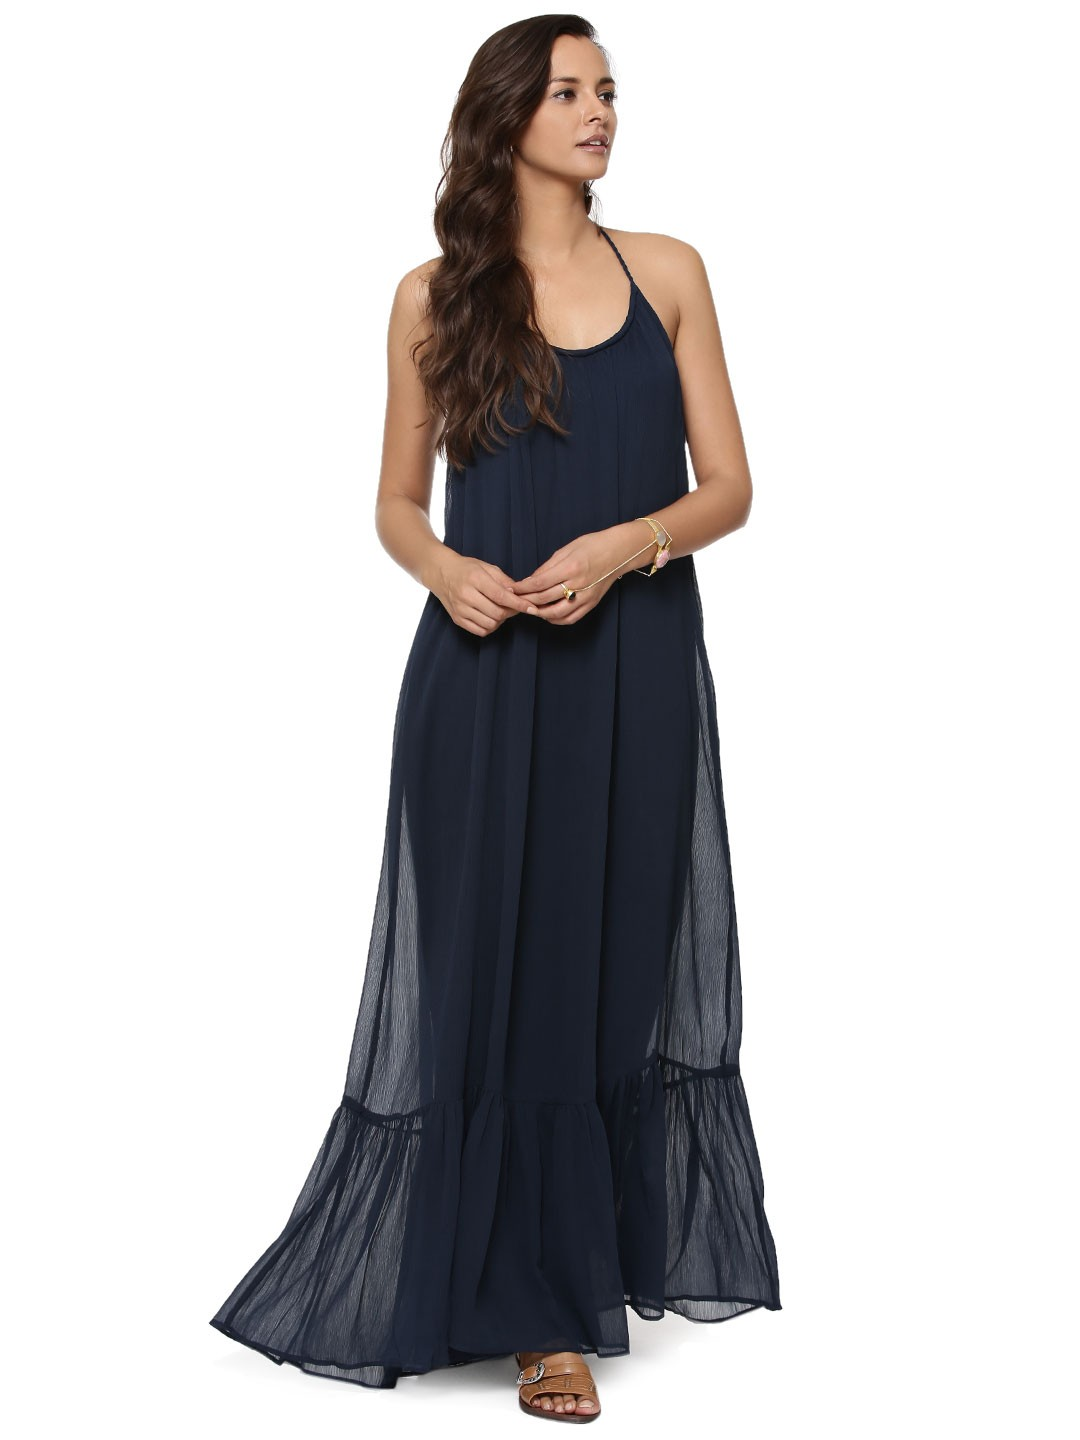 Fantastic  Maxi Dress For Women  Women39s Multi Maxi Dresses Online In India